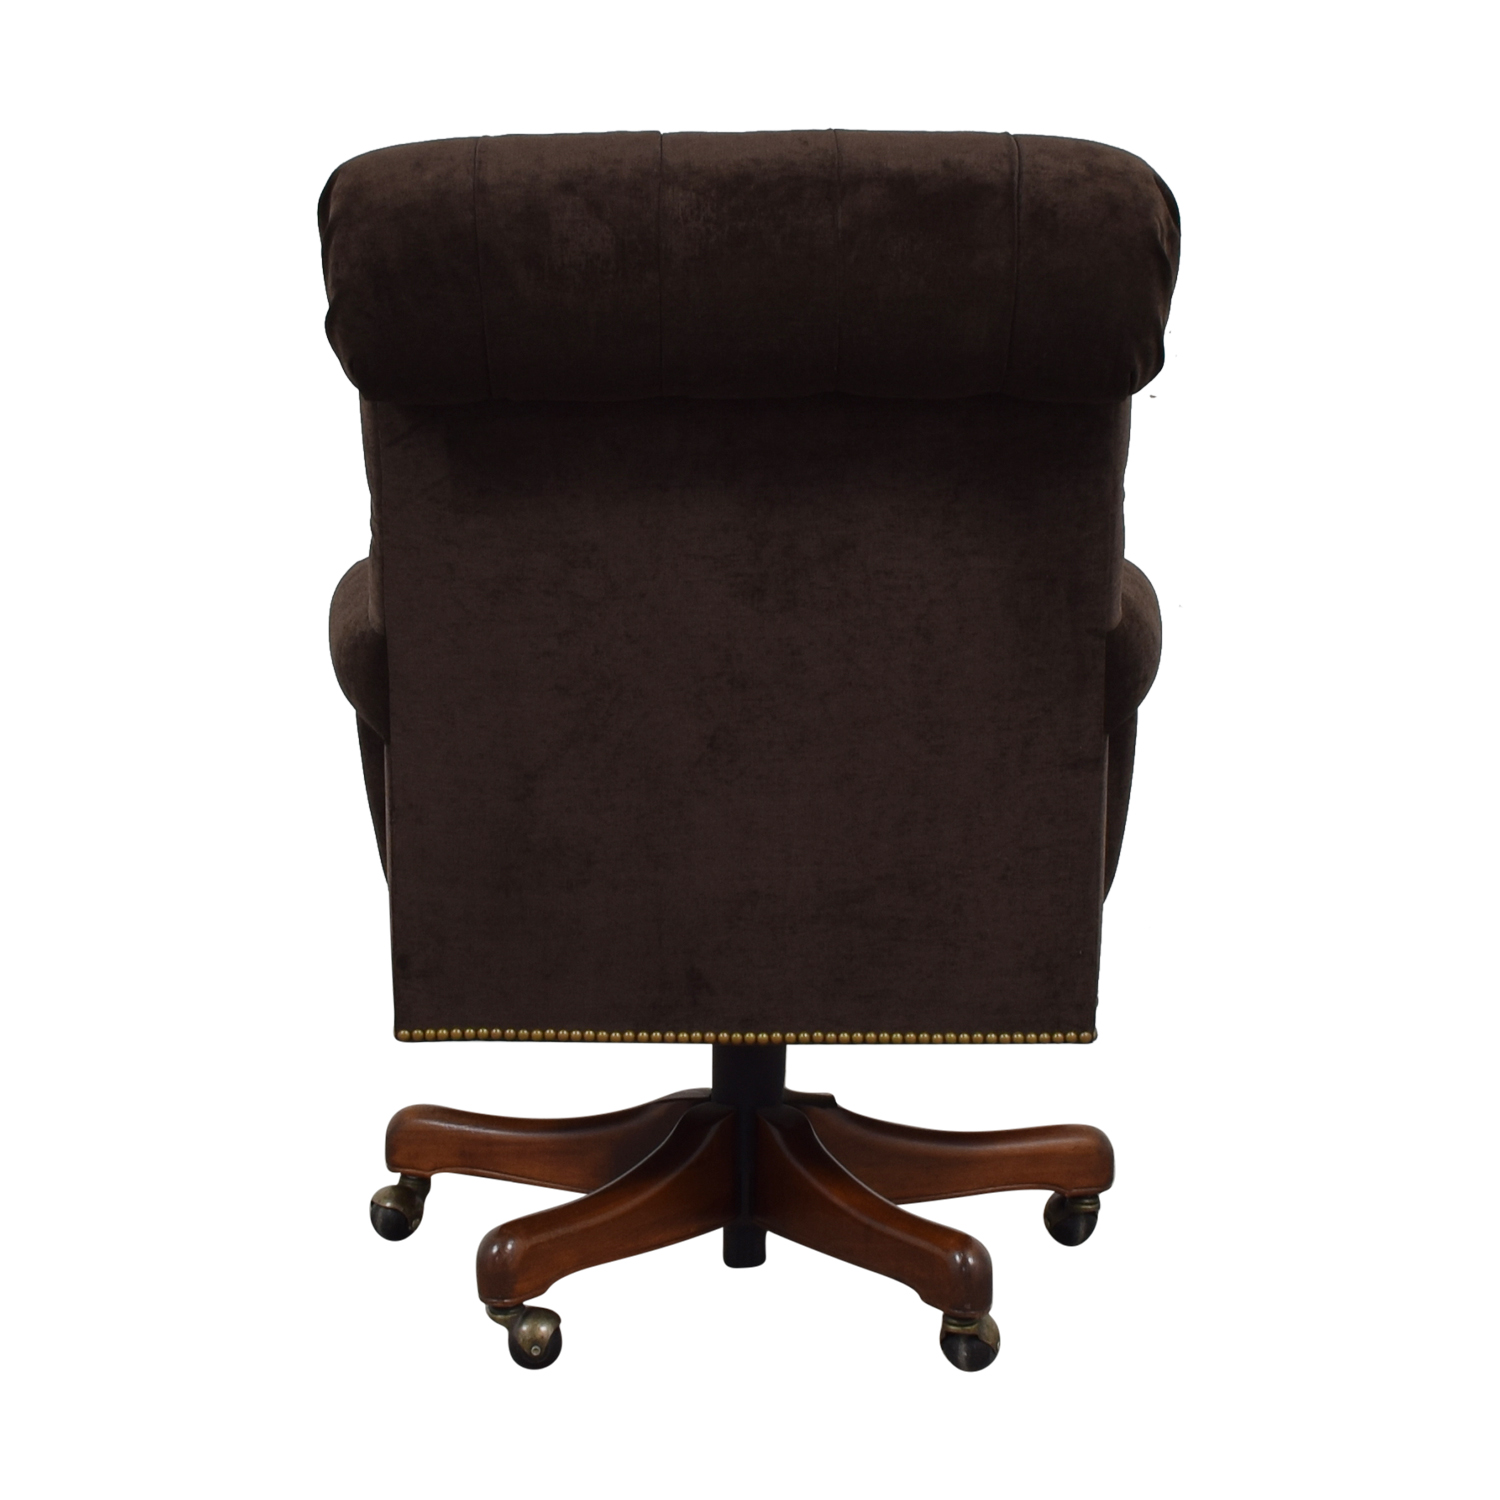 buy Furniture Masters Furniture Masters Brown Nailhead Tufted Desk Chair on Castors online